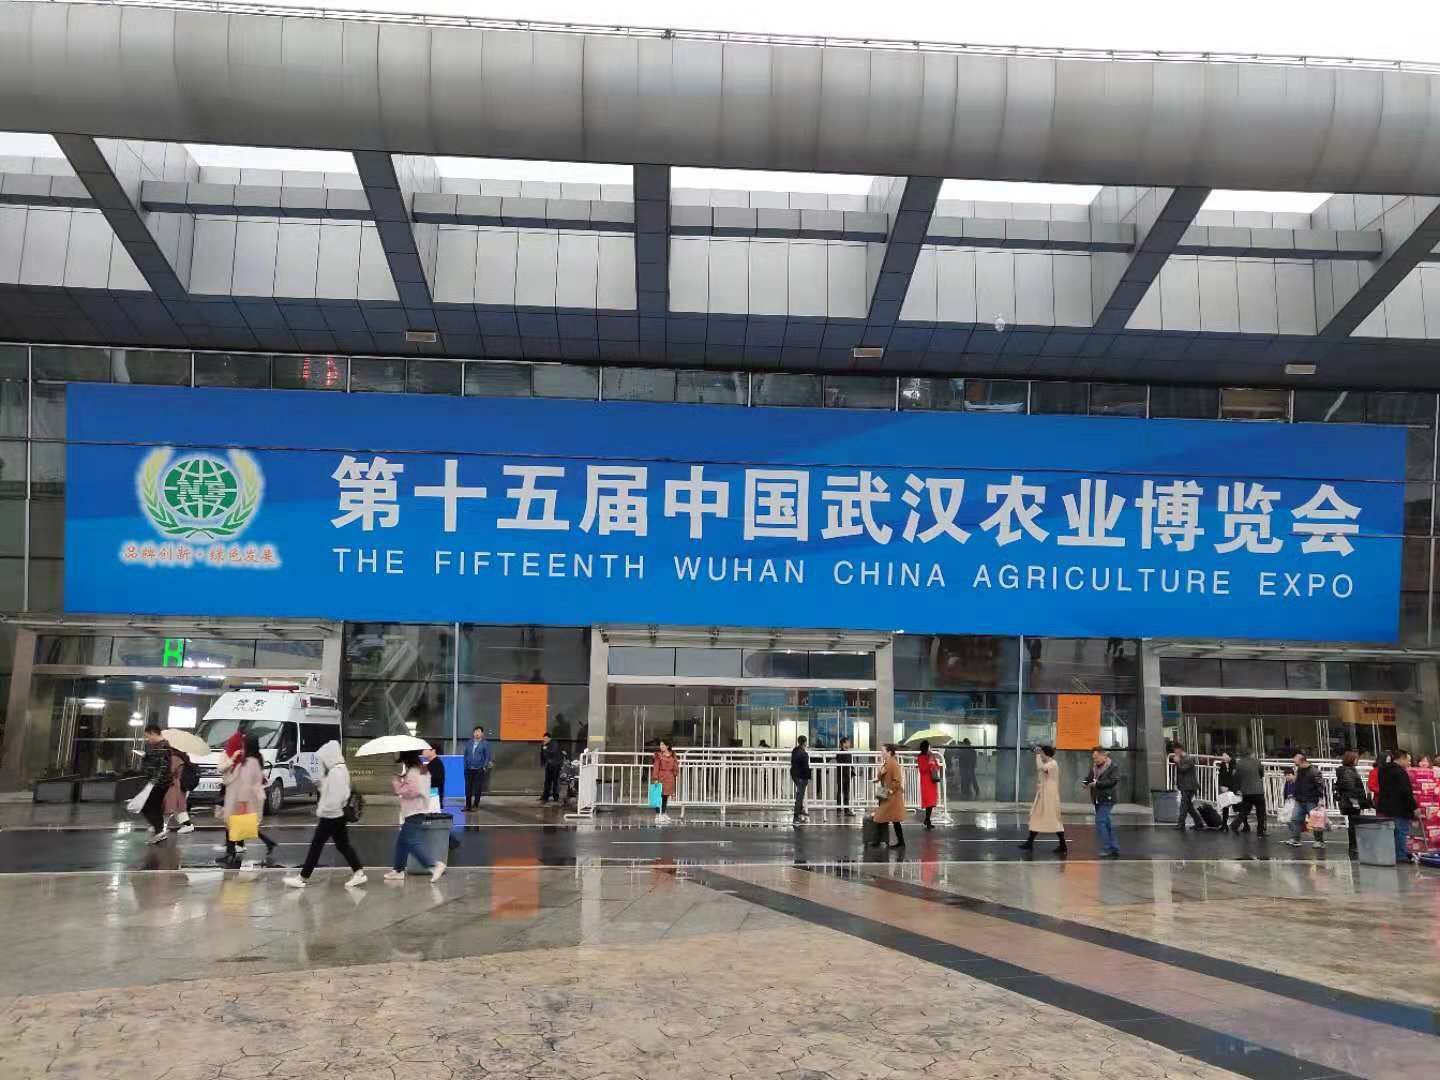 The 15th Wuhan Agricultural Expo in 2018